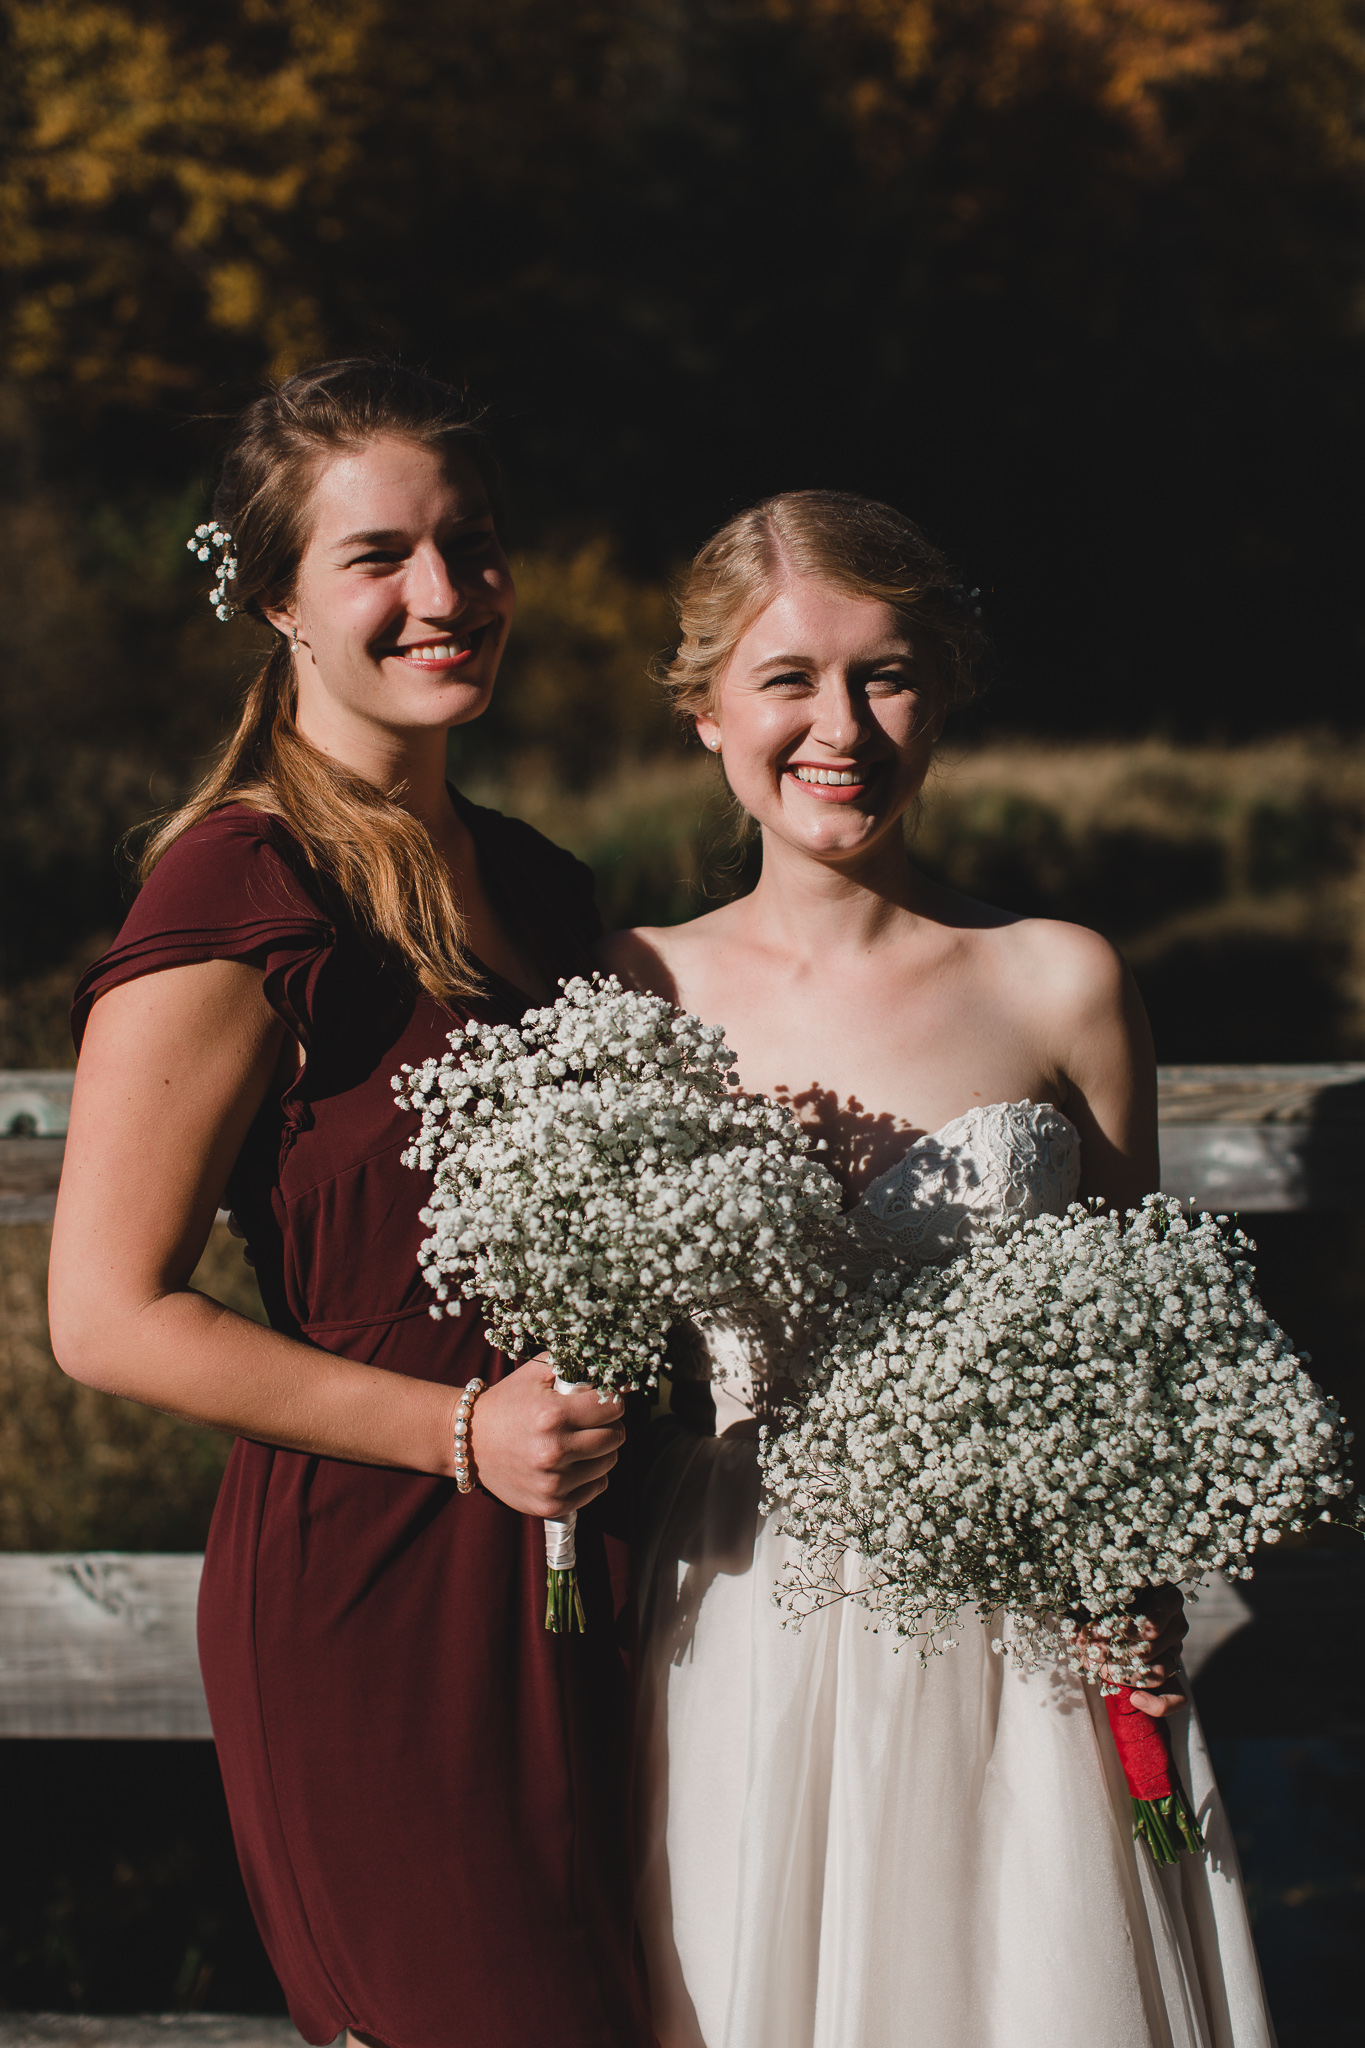 Burgundy bridesmaid wedding dresses